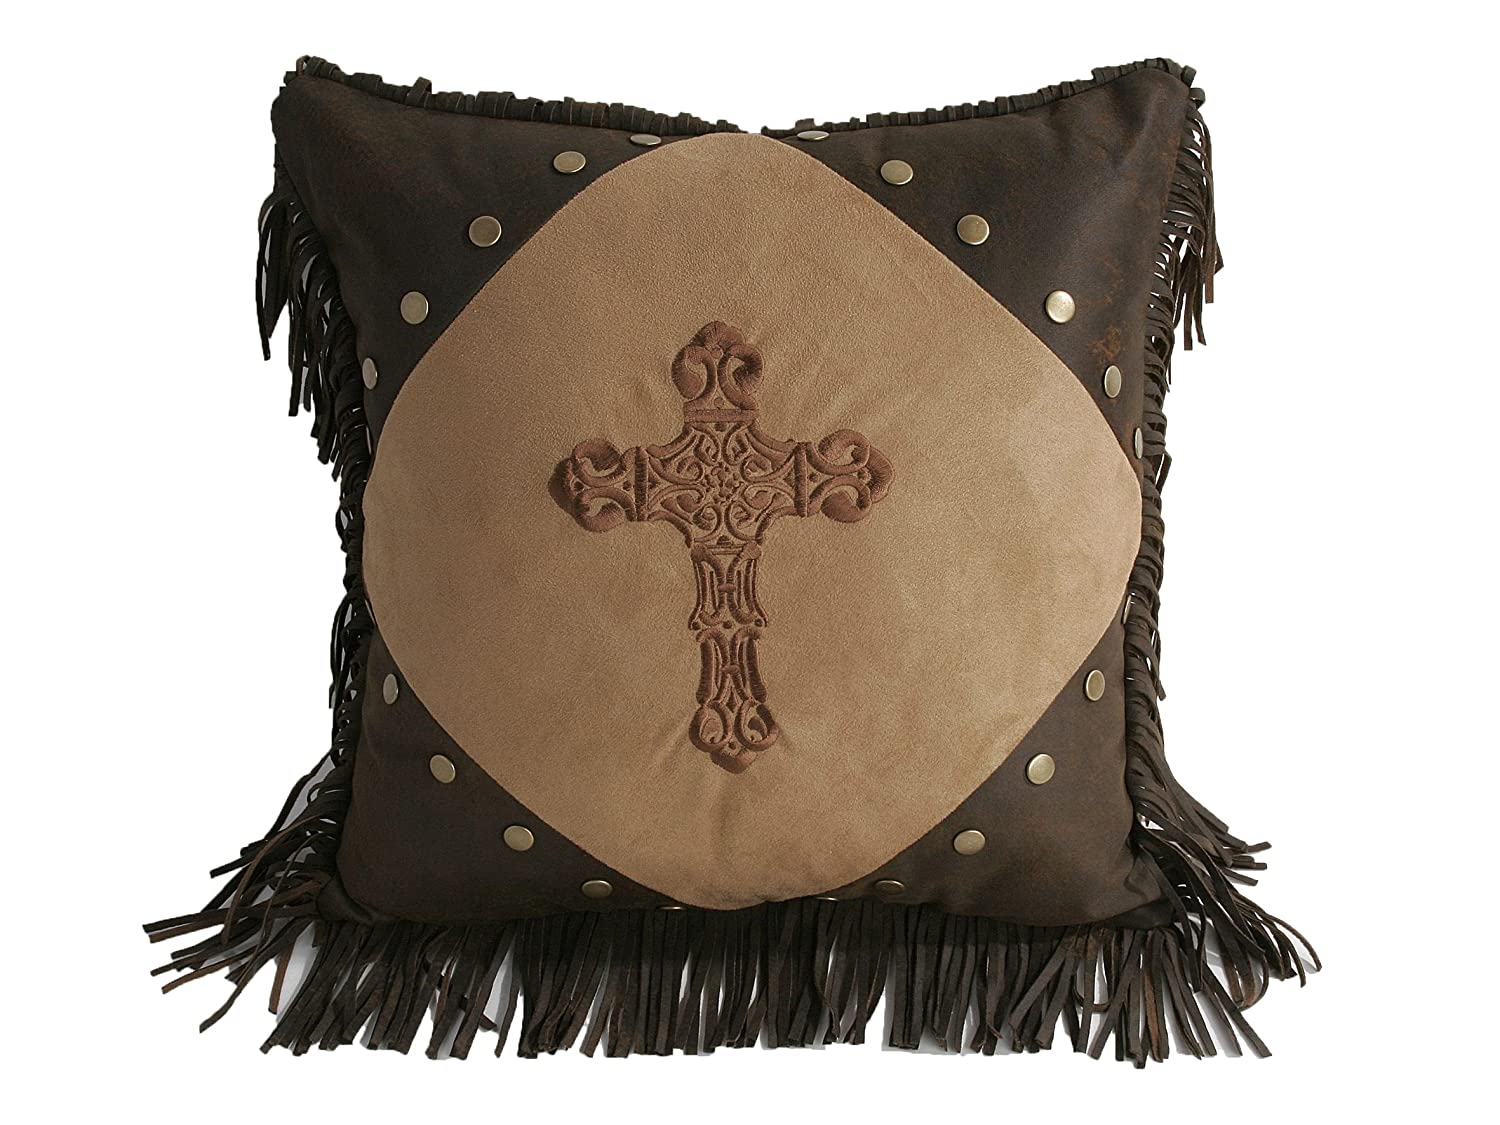 Diamond HomeMax Imports WS3182P5 HiEnd Accents Crosses Western Accent Pillow